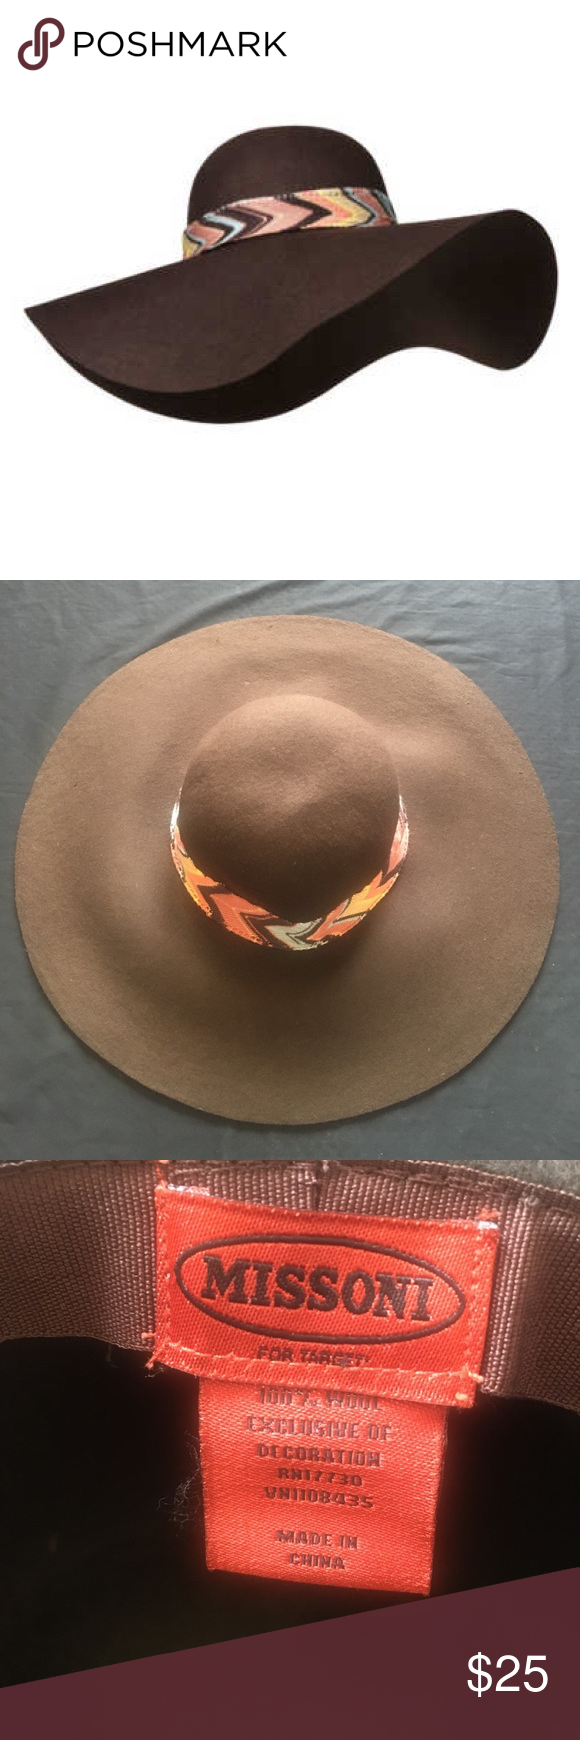 e8ba65cfad0d6 Missoni for Target Floppy hat Worn once !!! Missoni for Target Accessories  Hats